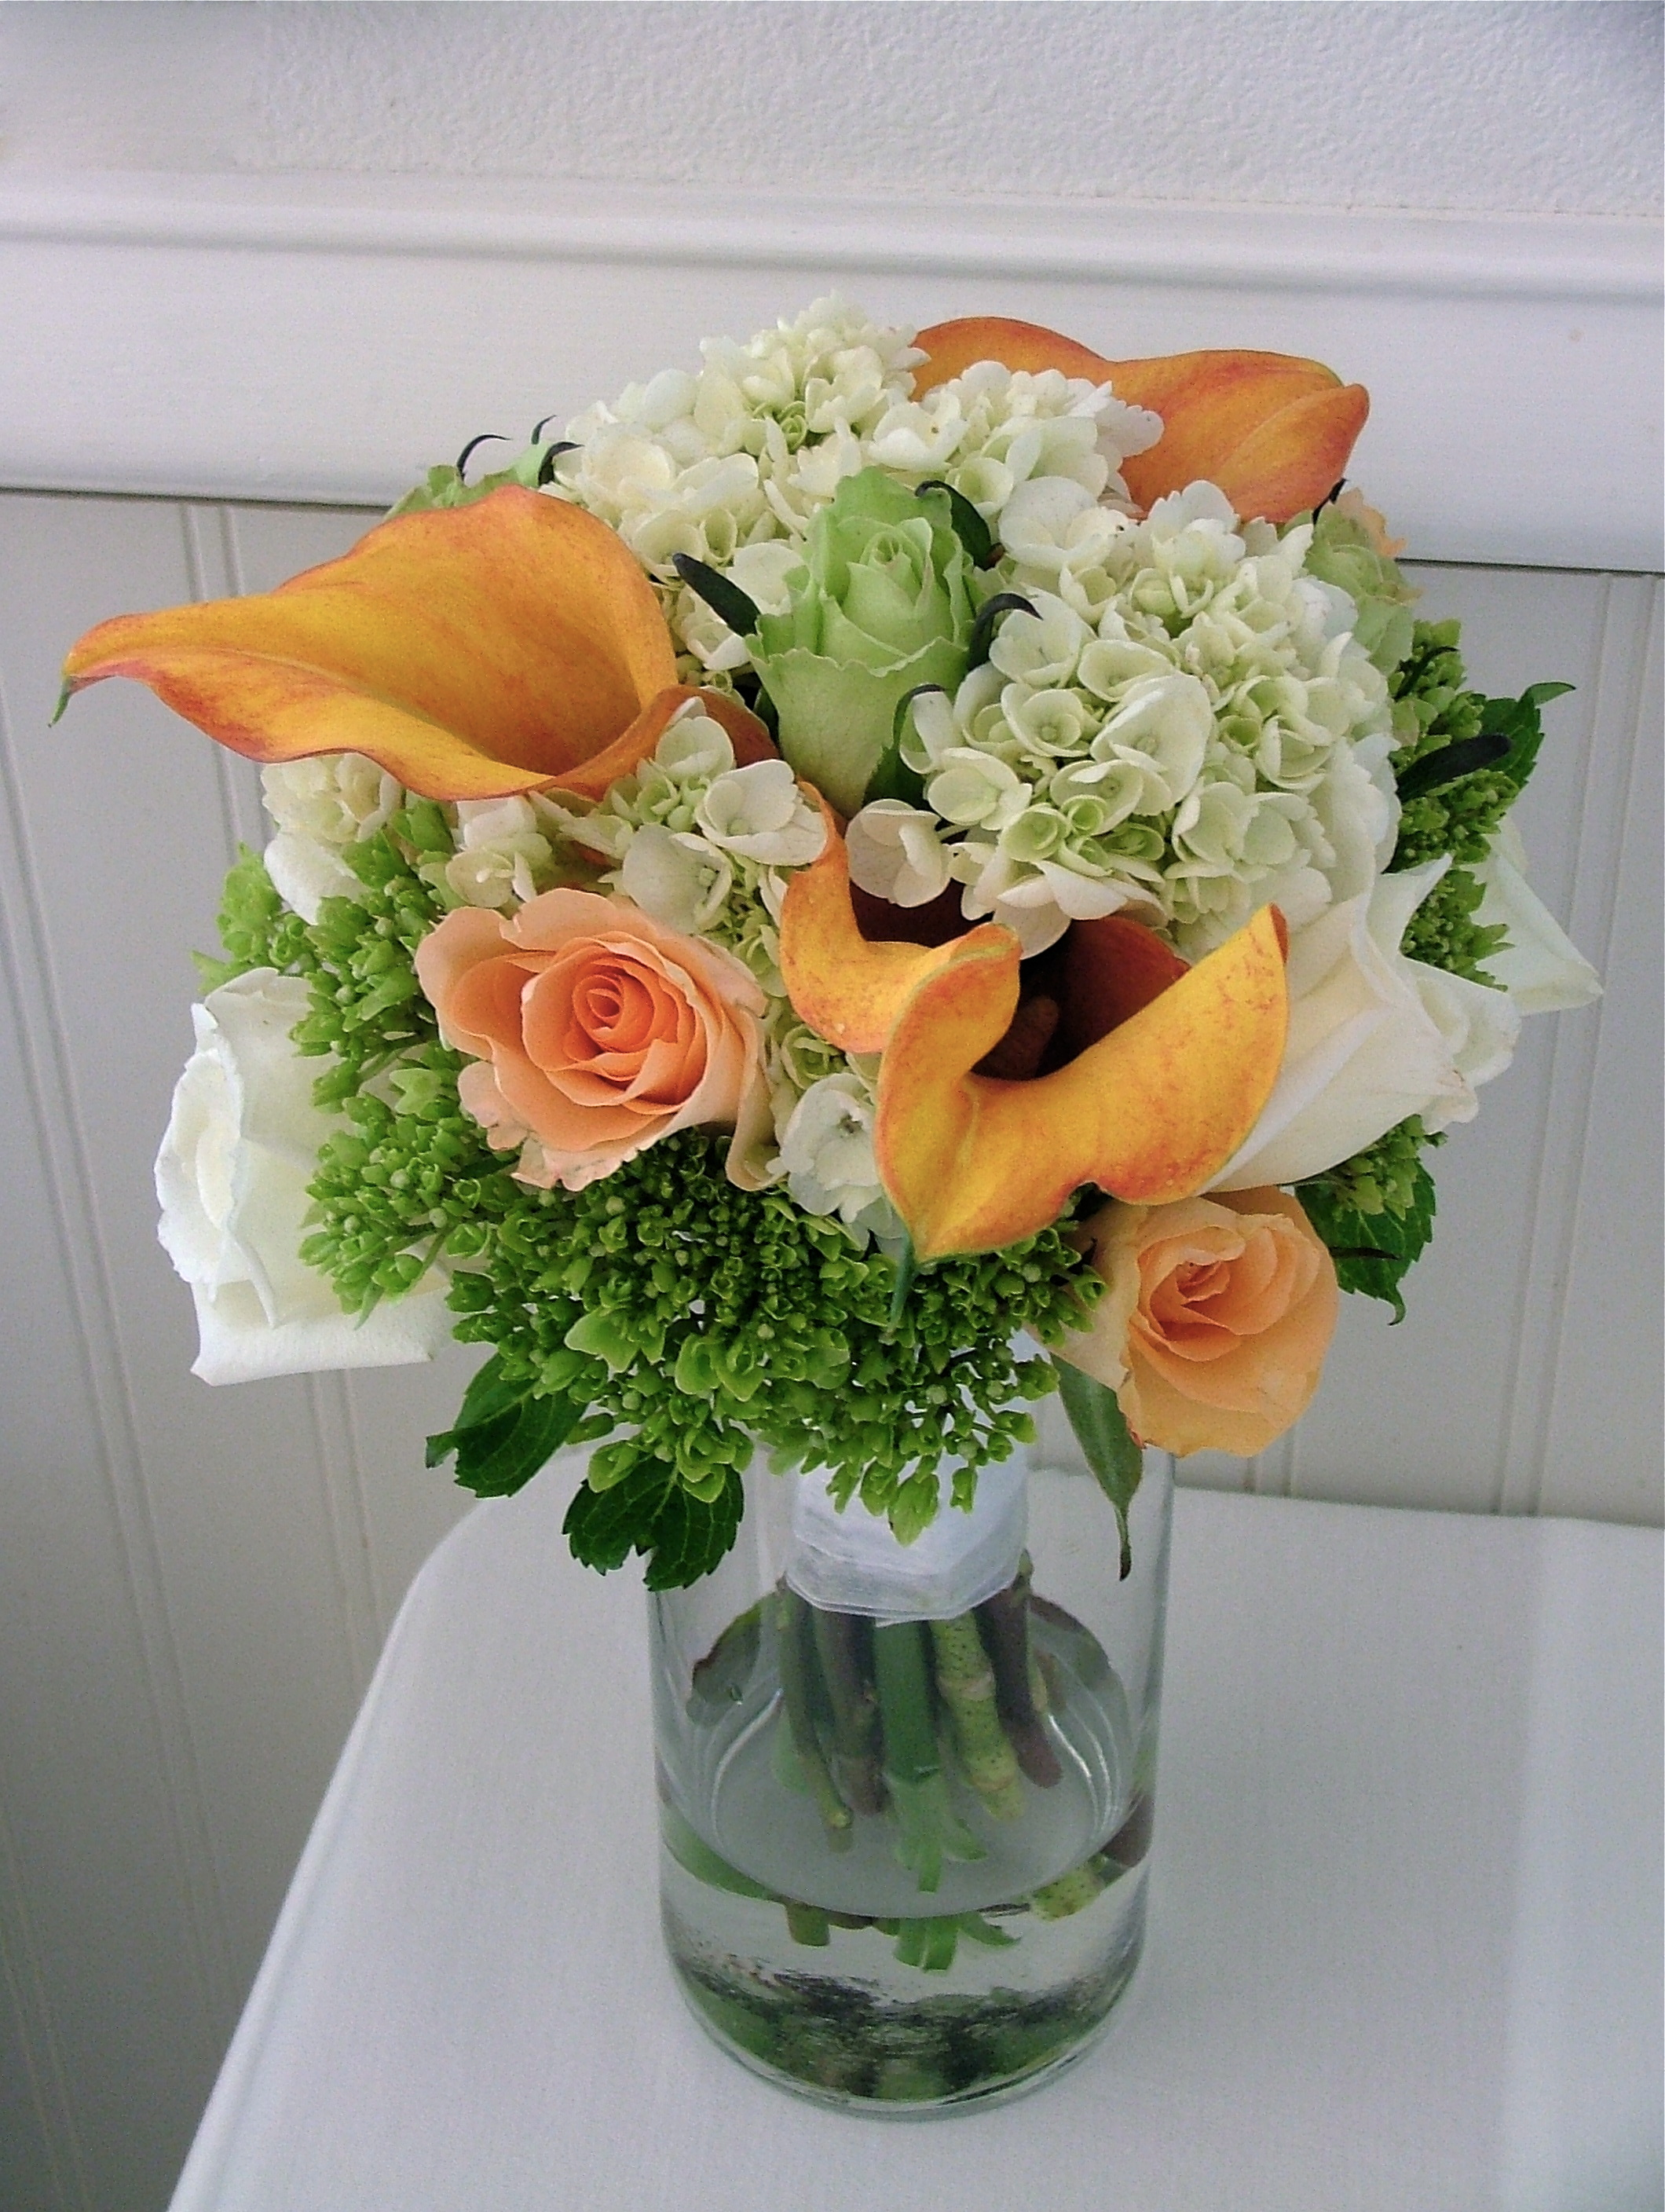 brides calla lisianthus hydrangea bouquet | Flickr - Photo Sharing!